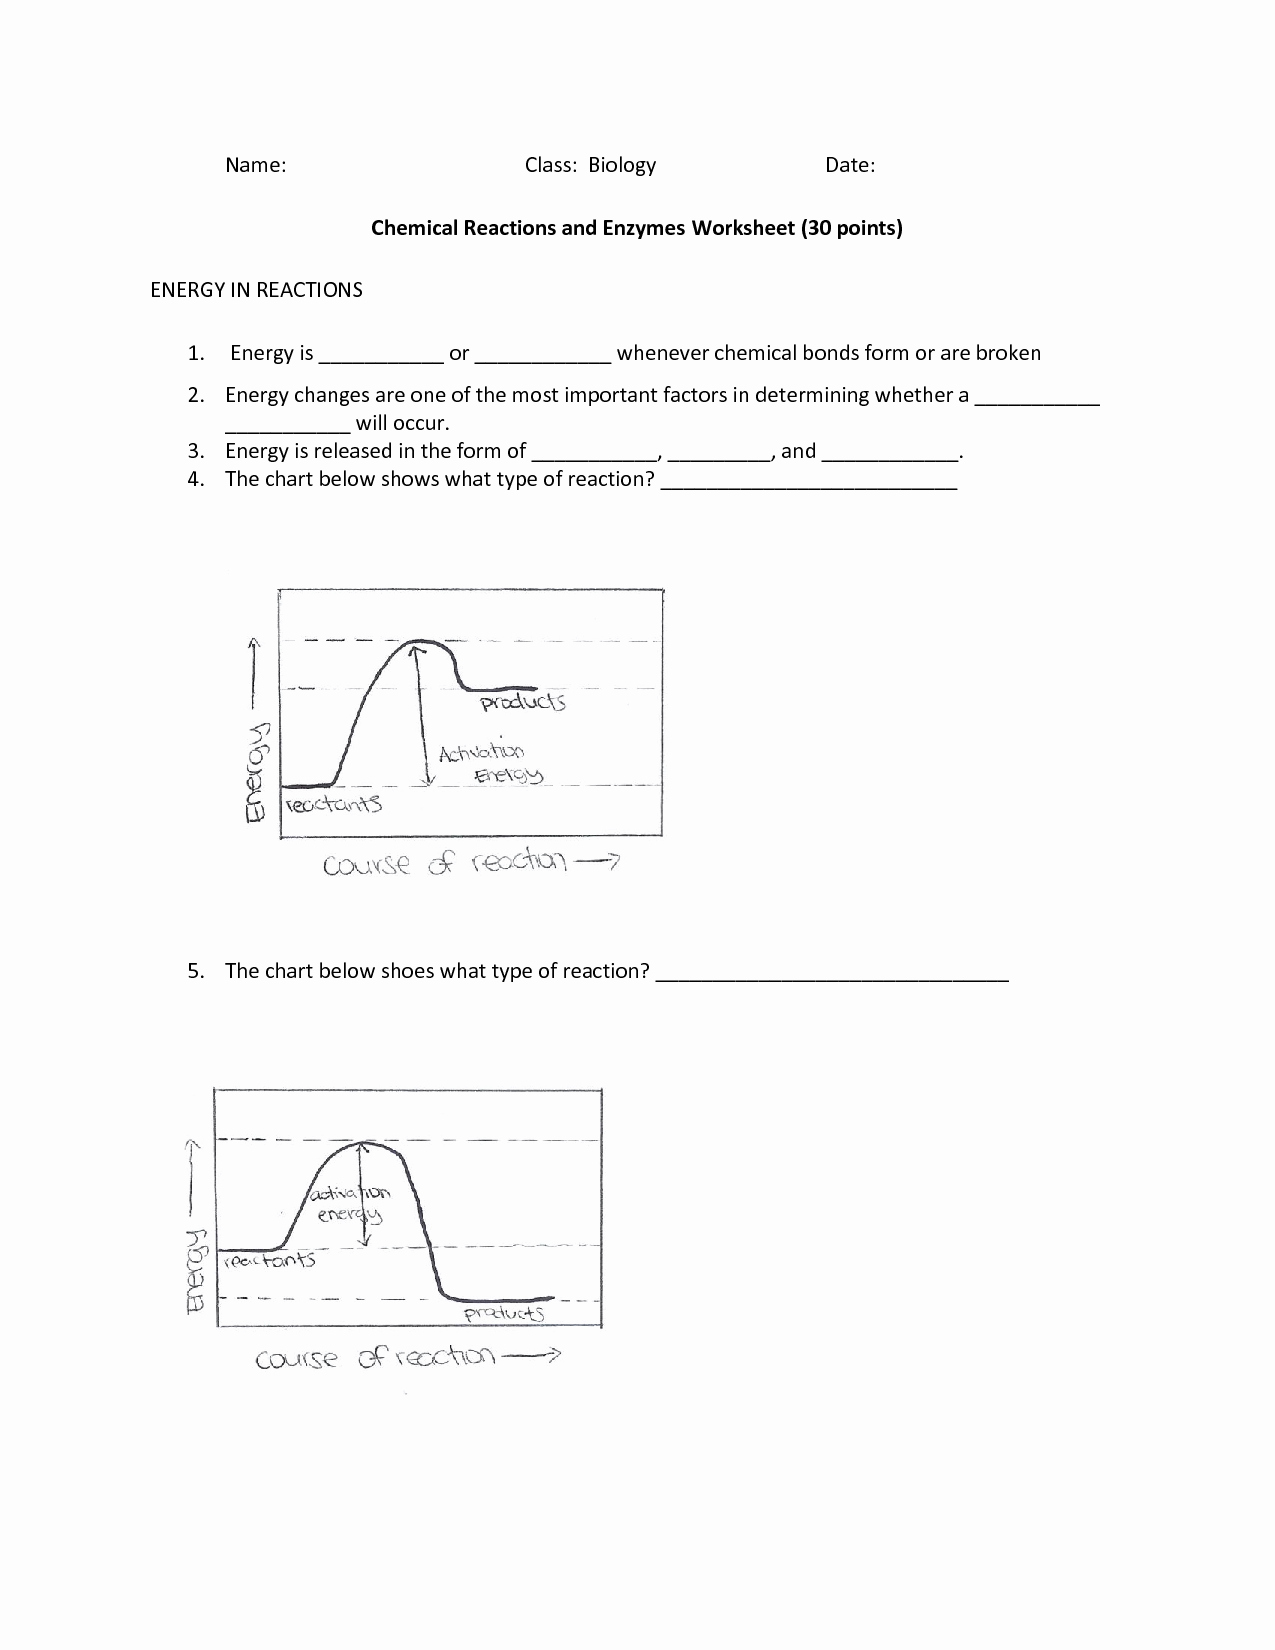 Enzymes Worksheet Answer Key Fresh 20 Best Of Enzymes and Chemical Reactions Worksheet